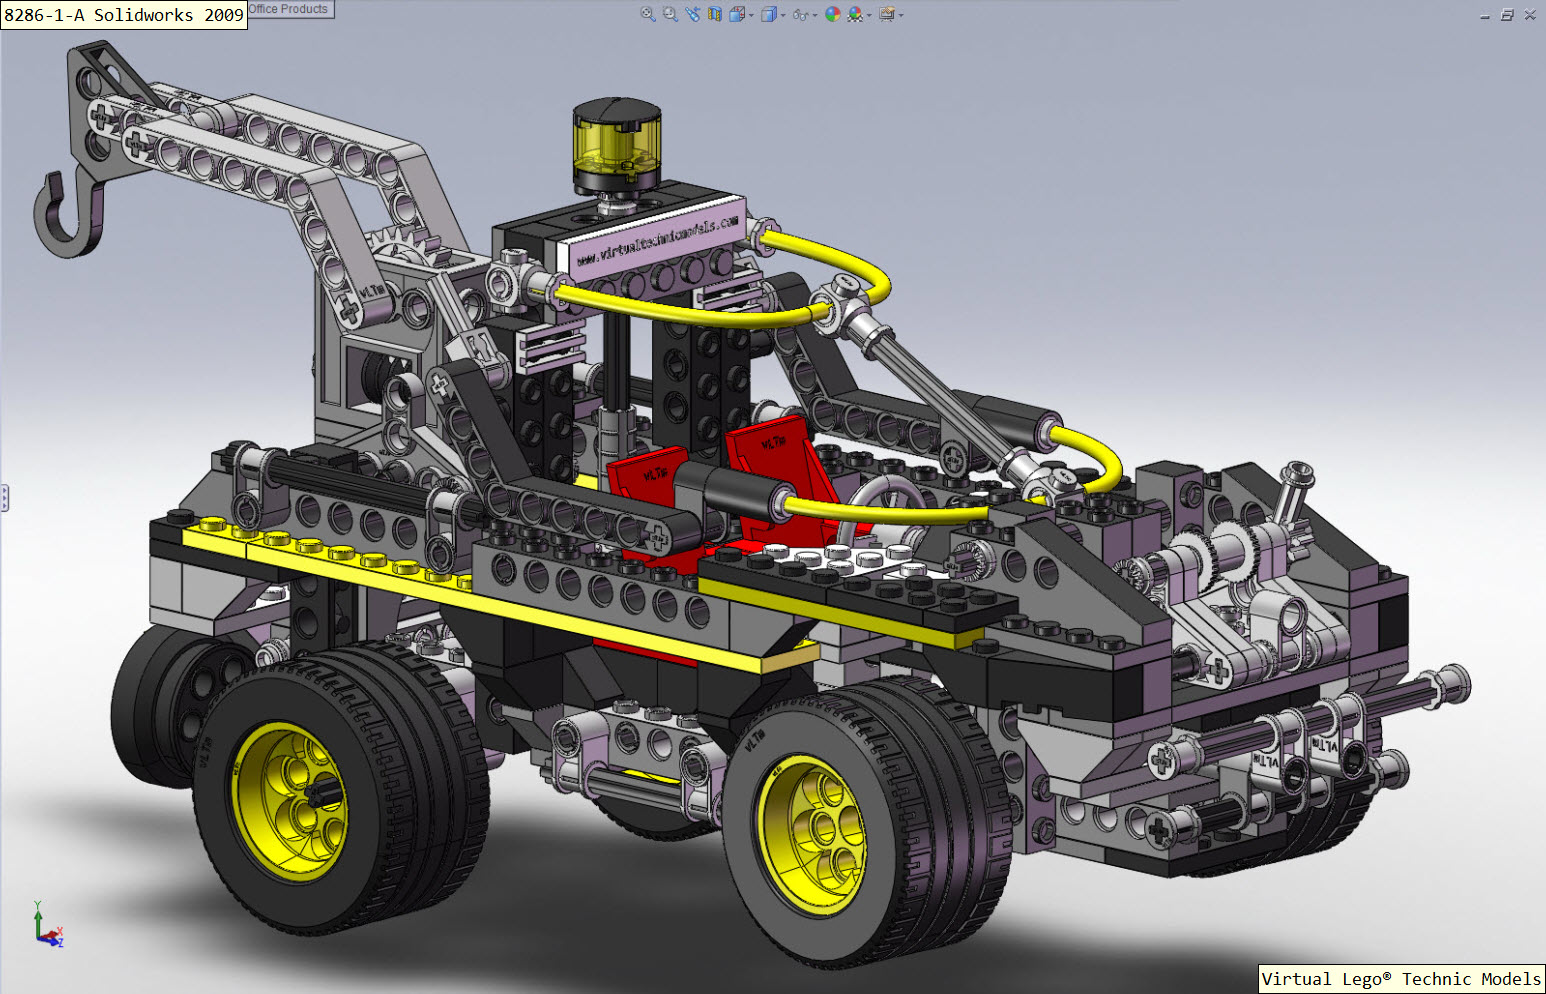 8286-1-a-03-solidworks_2009.jpg